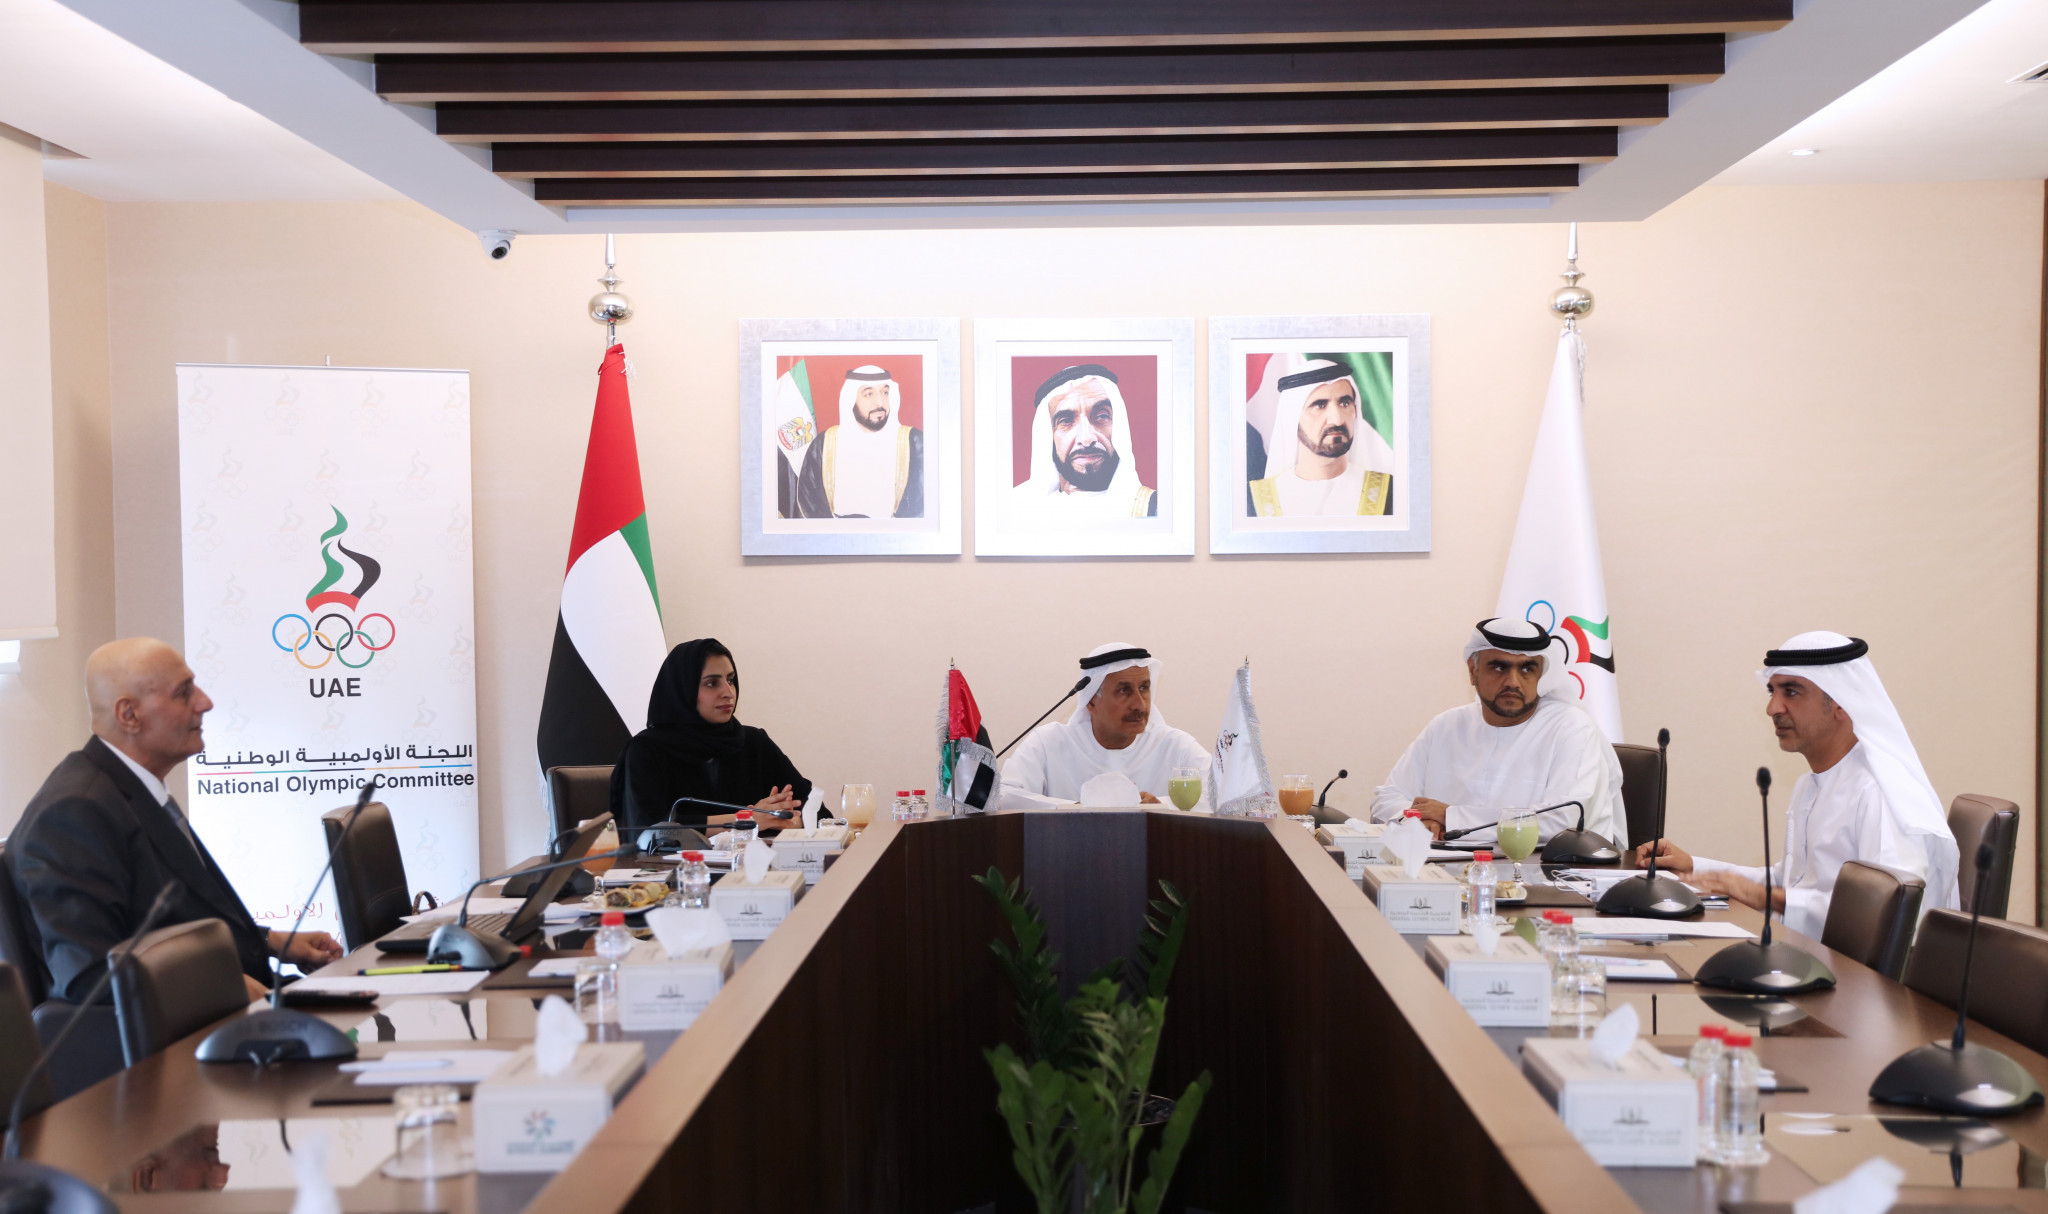 UAE NOC Olympic Planning Committee reviews plans and results of sports participation